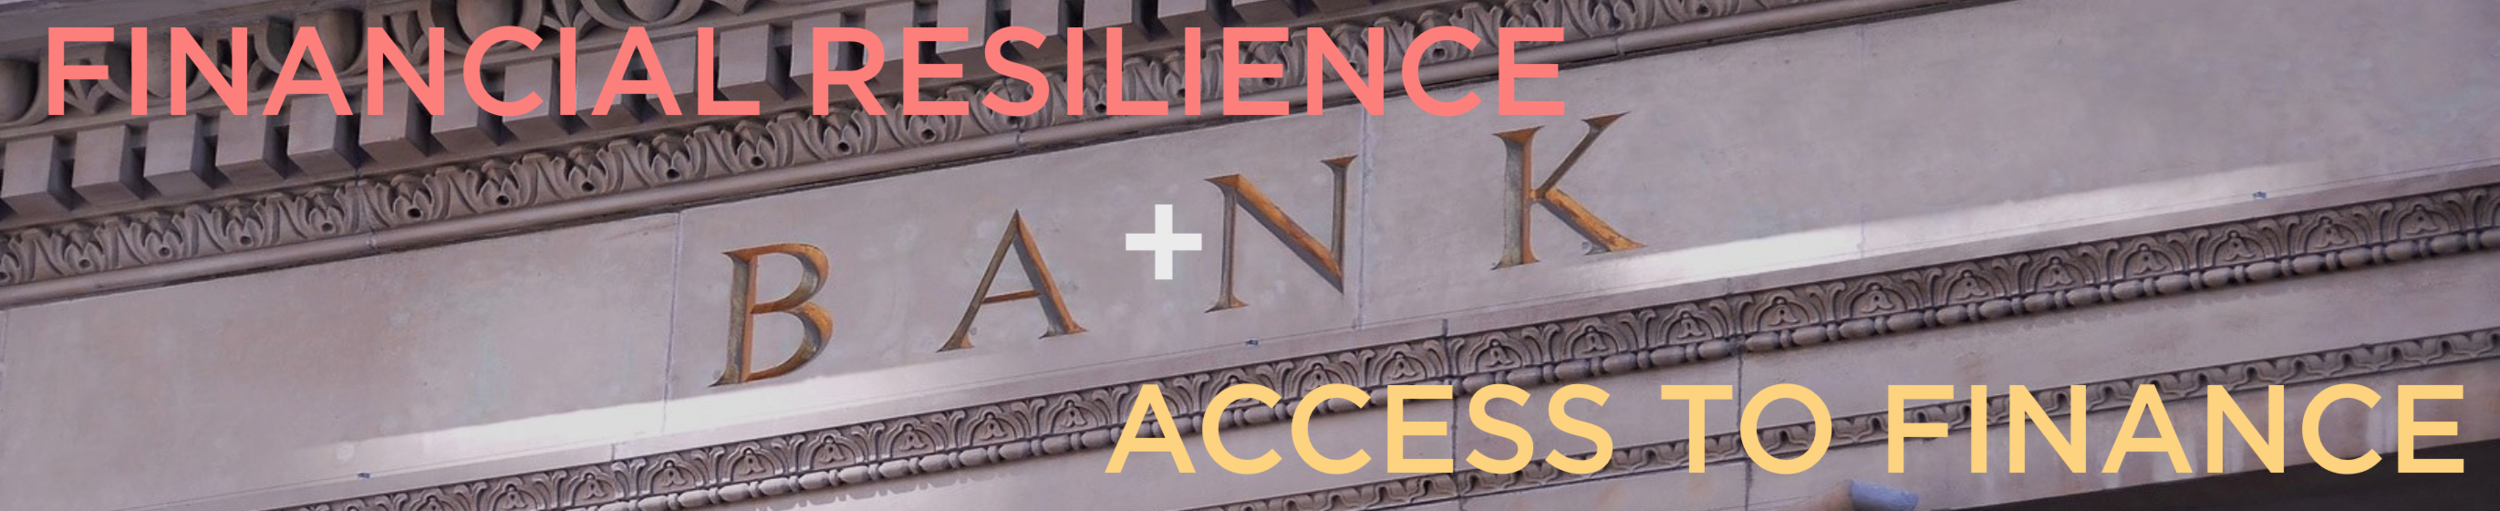 Banner - Financial Resilience - Access to Finance (Version 2).png